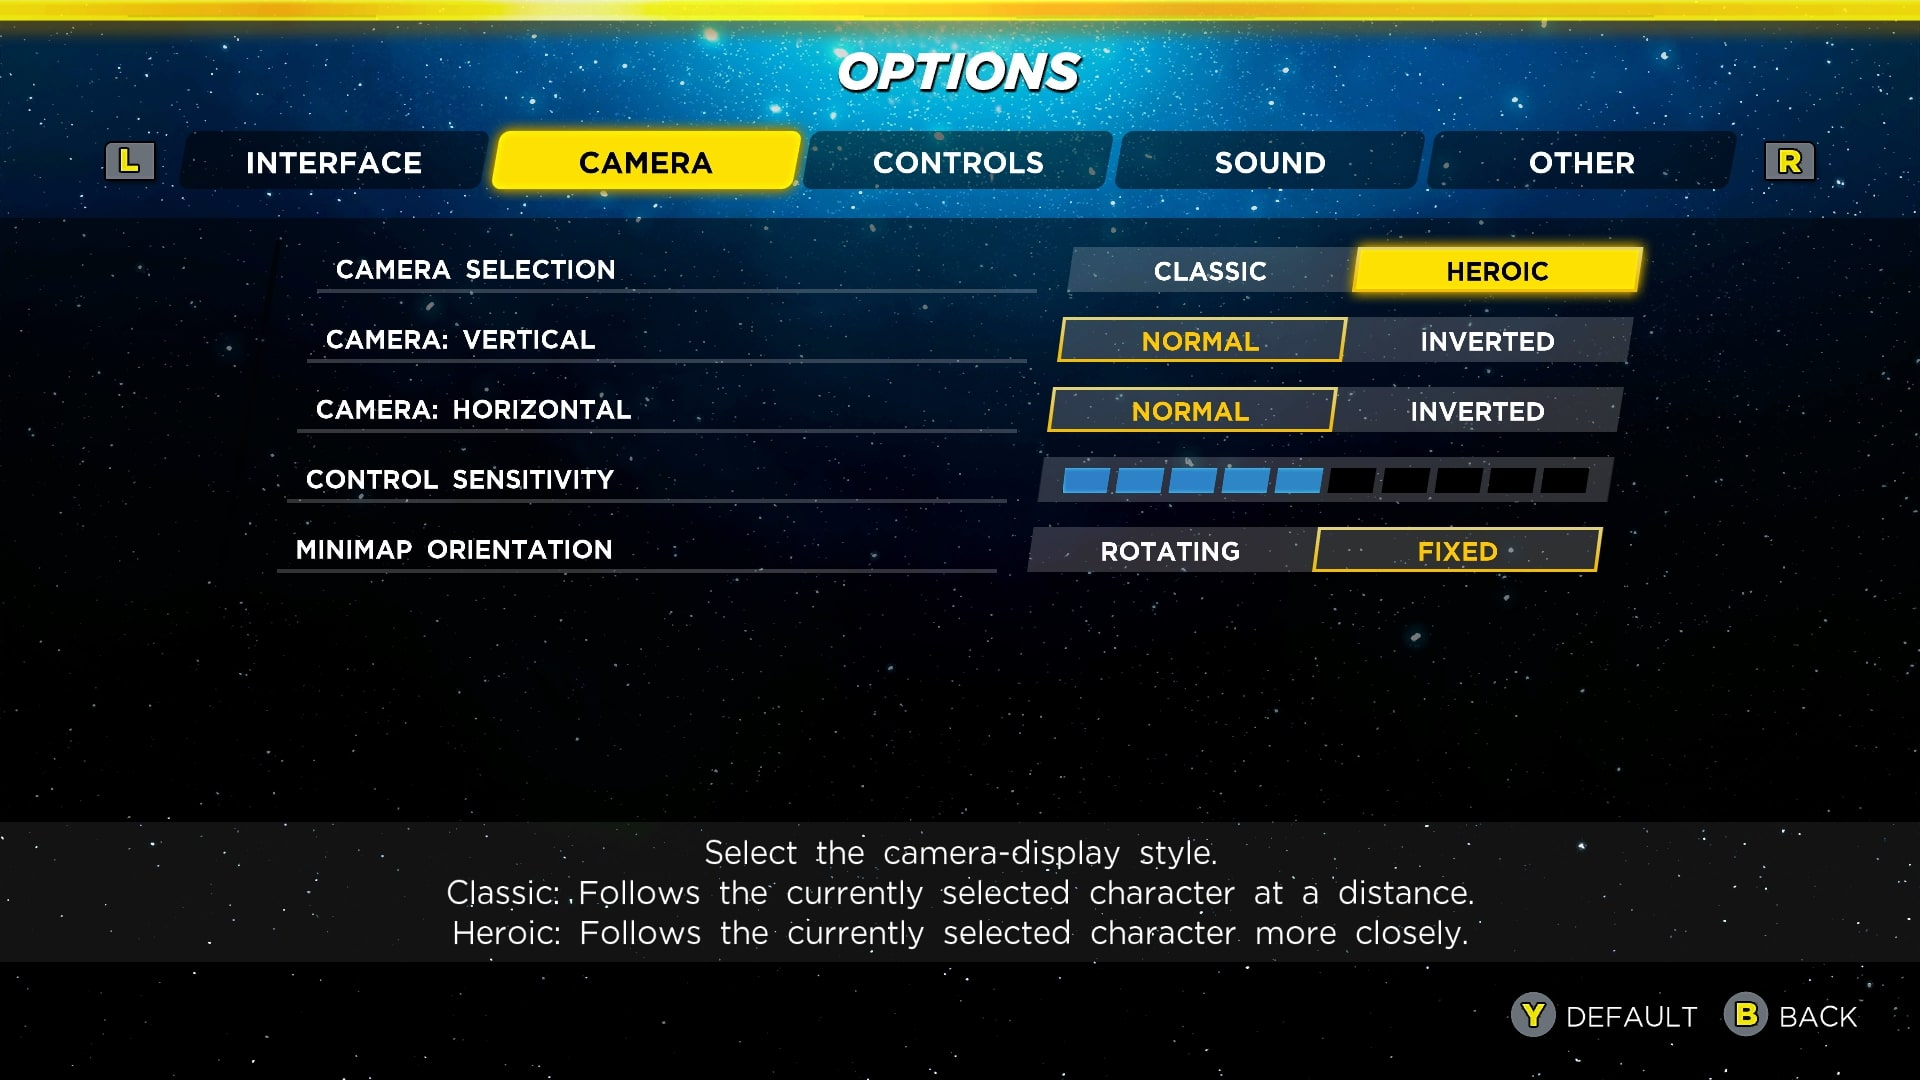 Marvel Ultimate Alliance 3: How to Change the Camera and